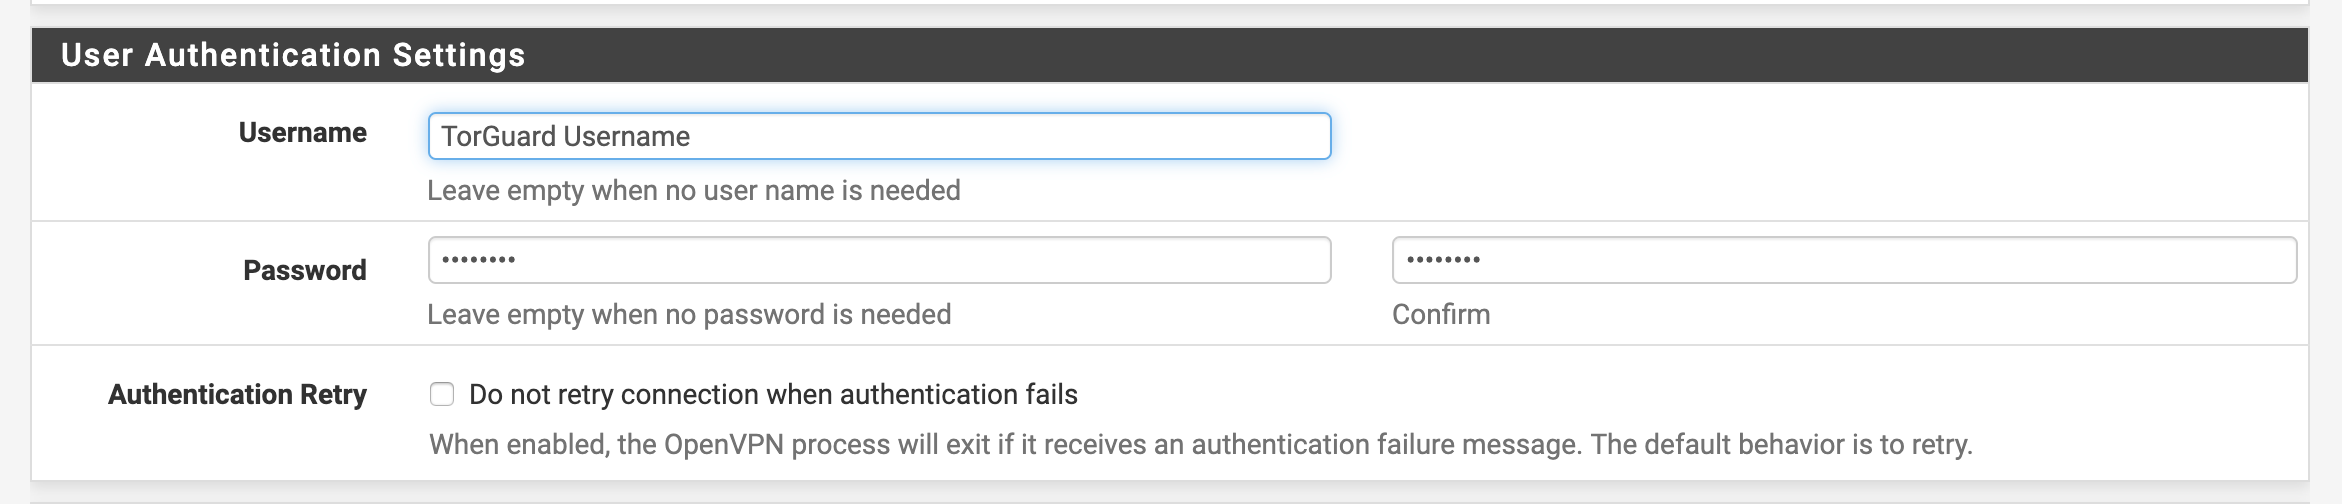 User-Authentication-Settings.png